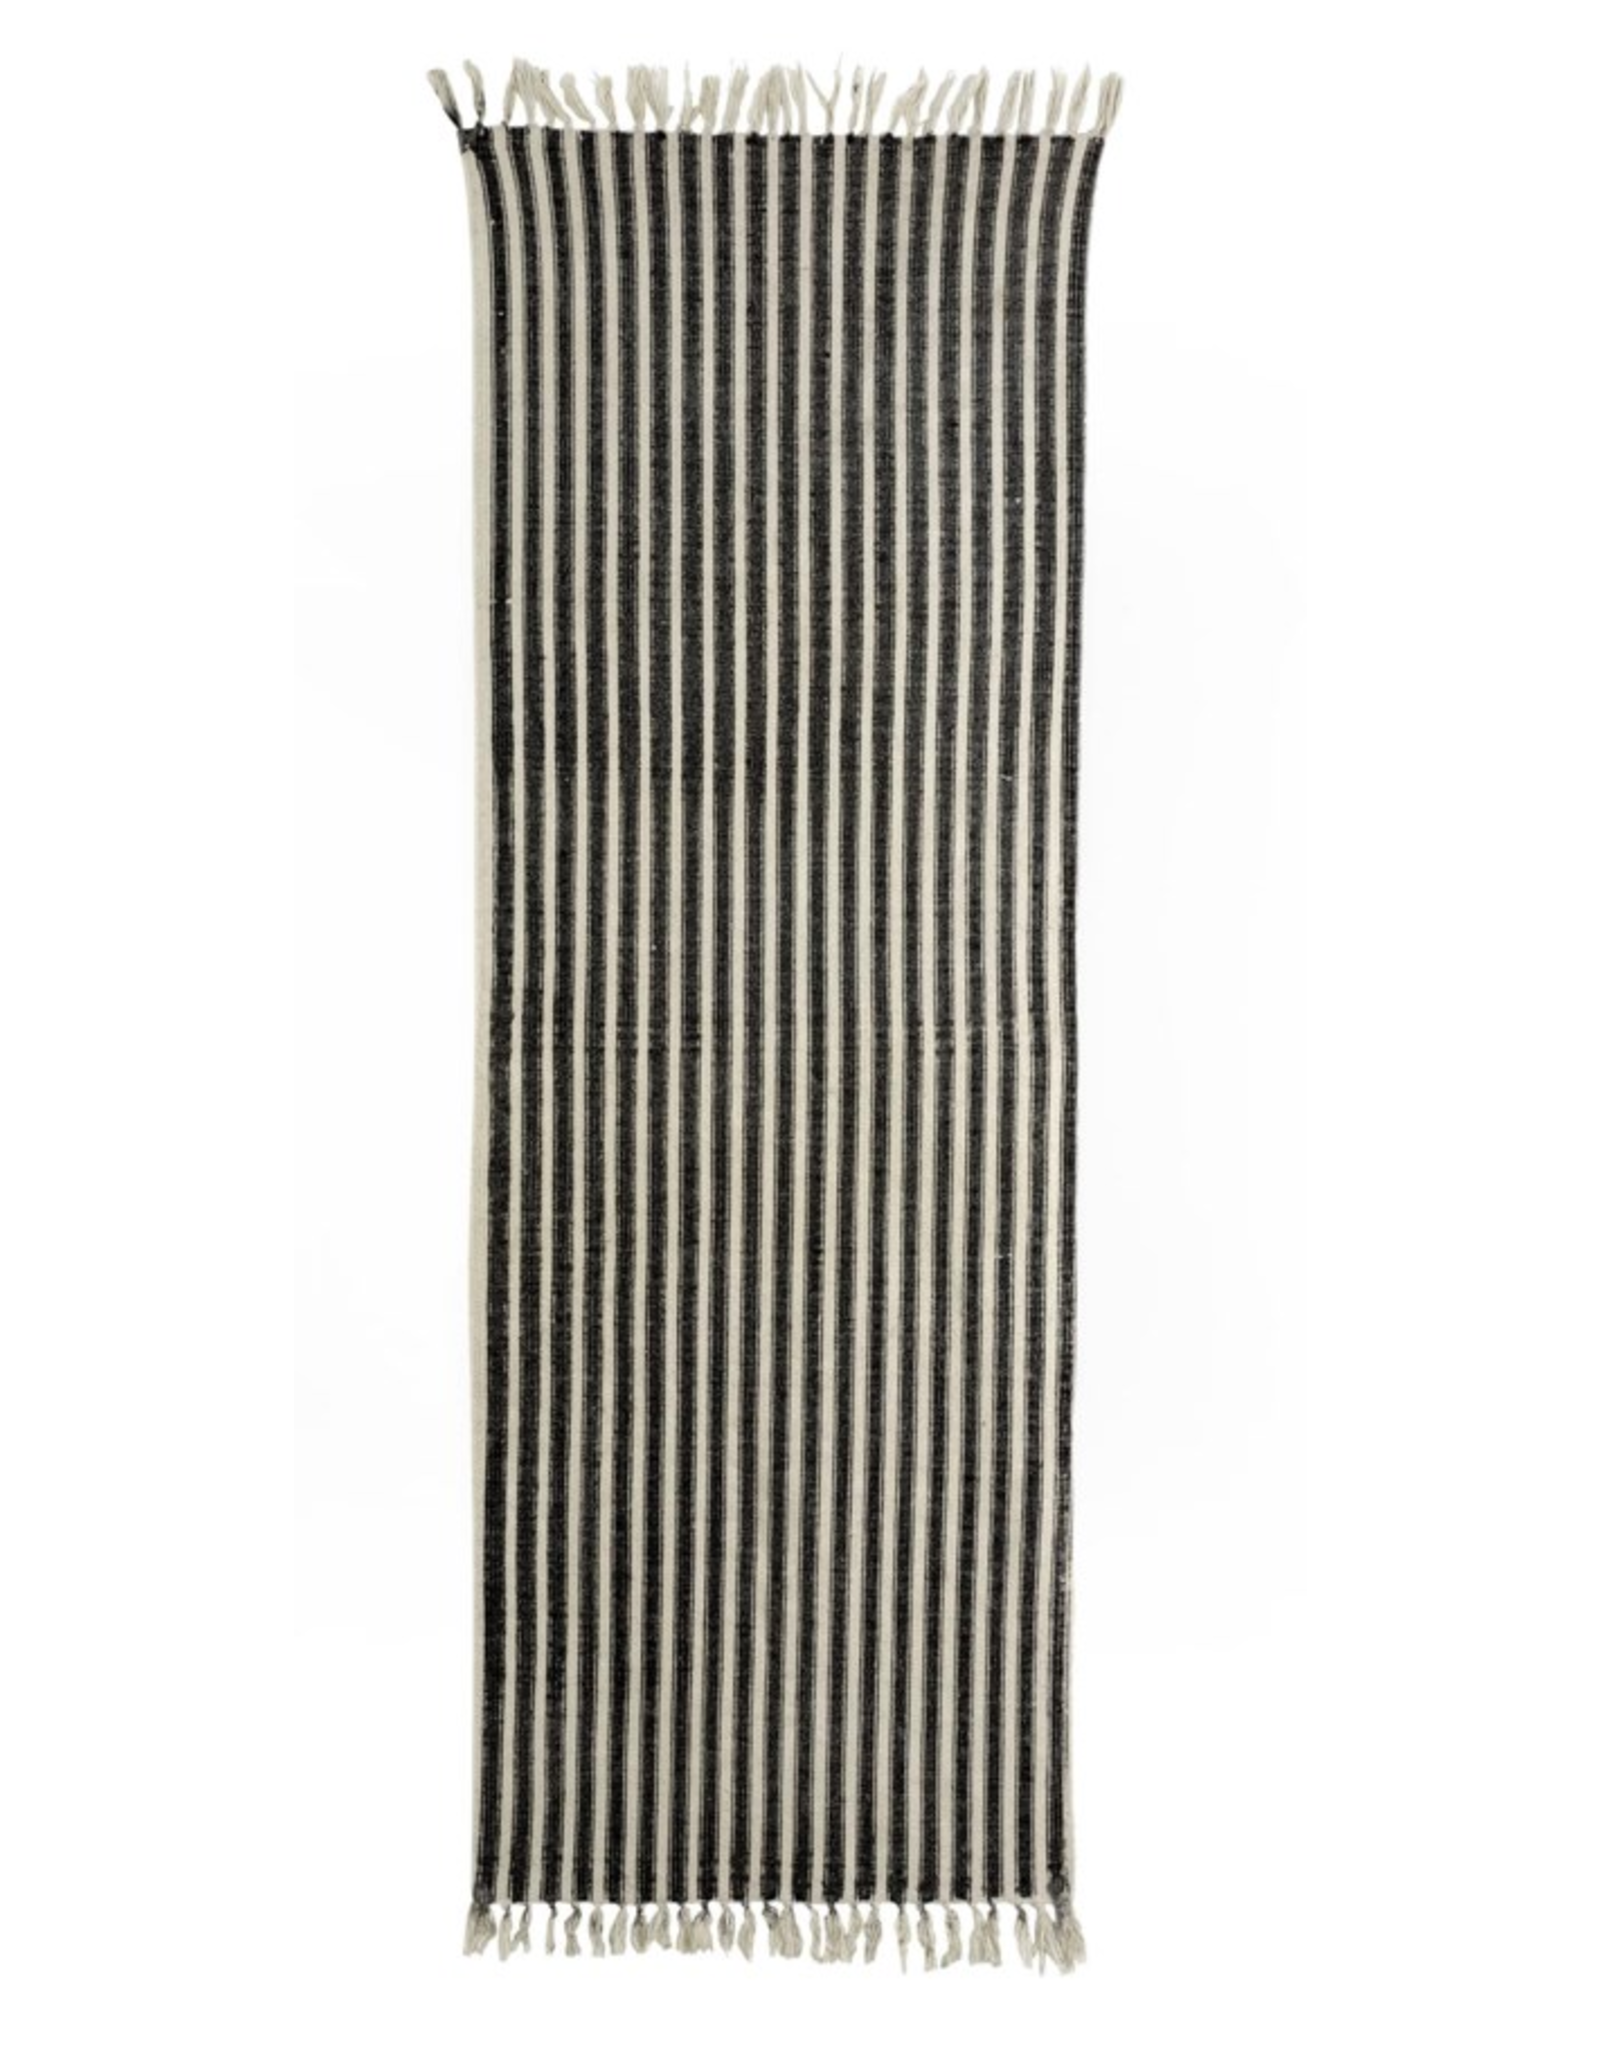 2x6 French Ticking Rug